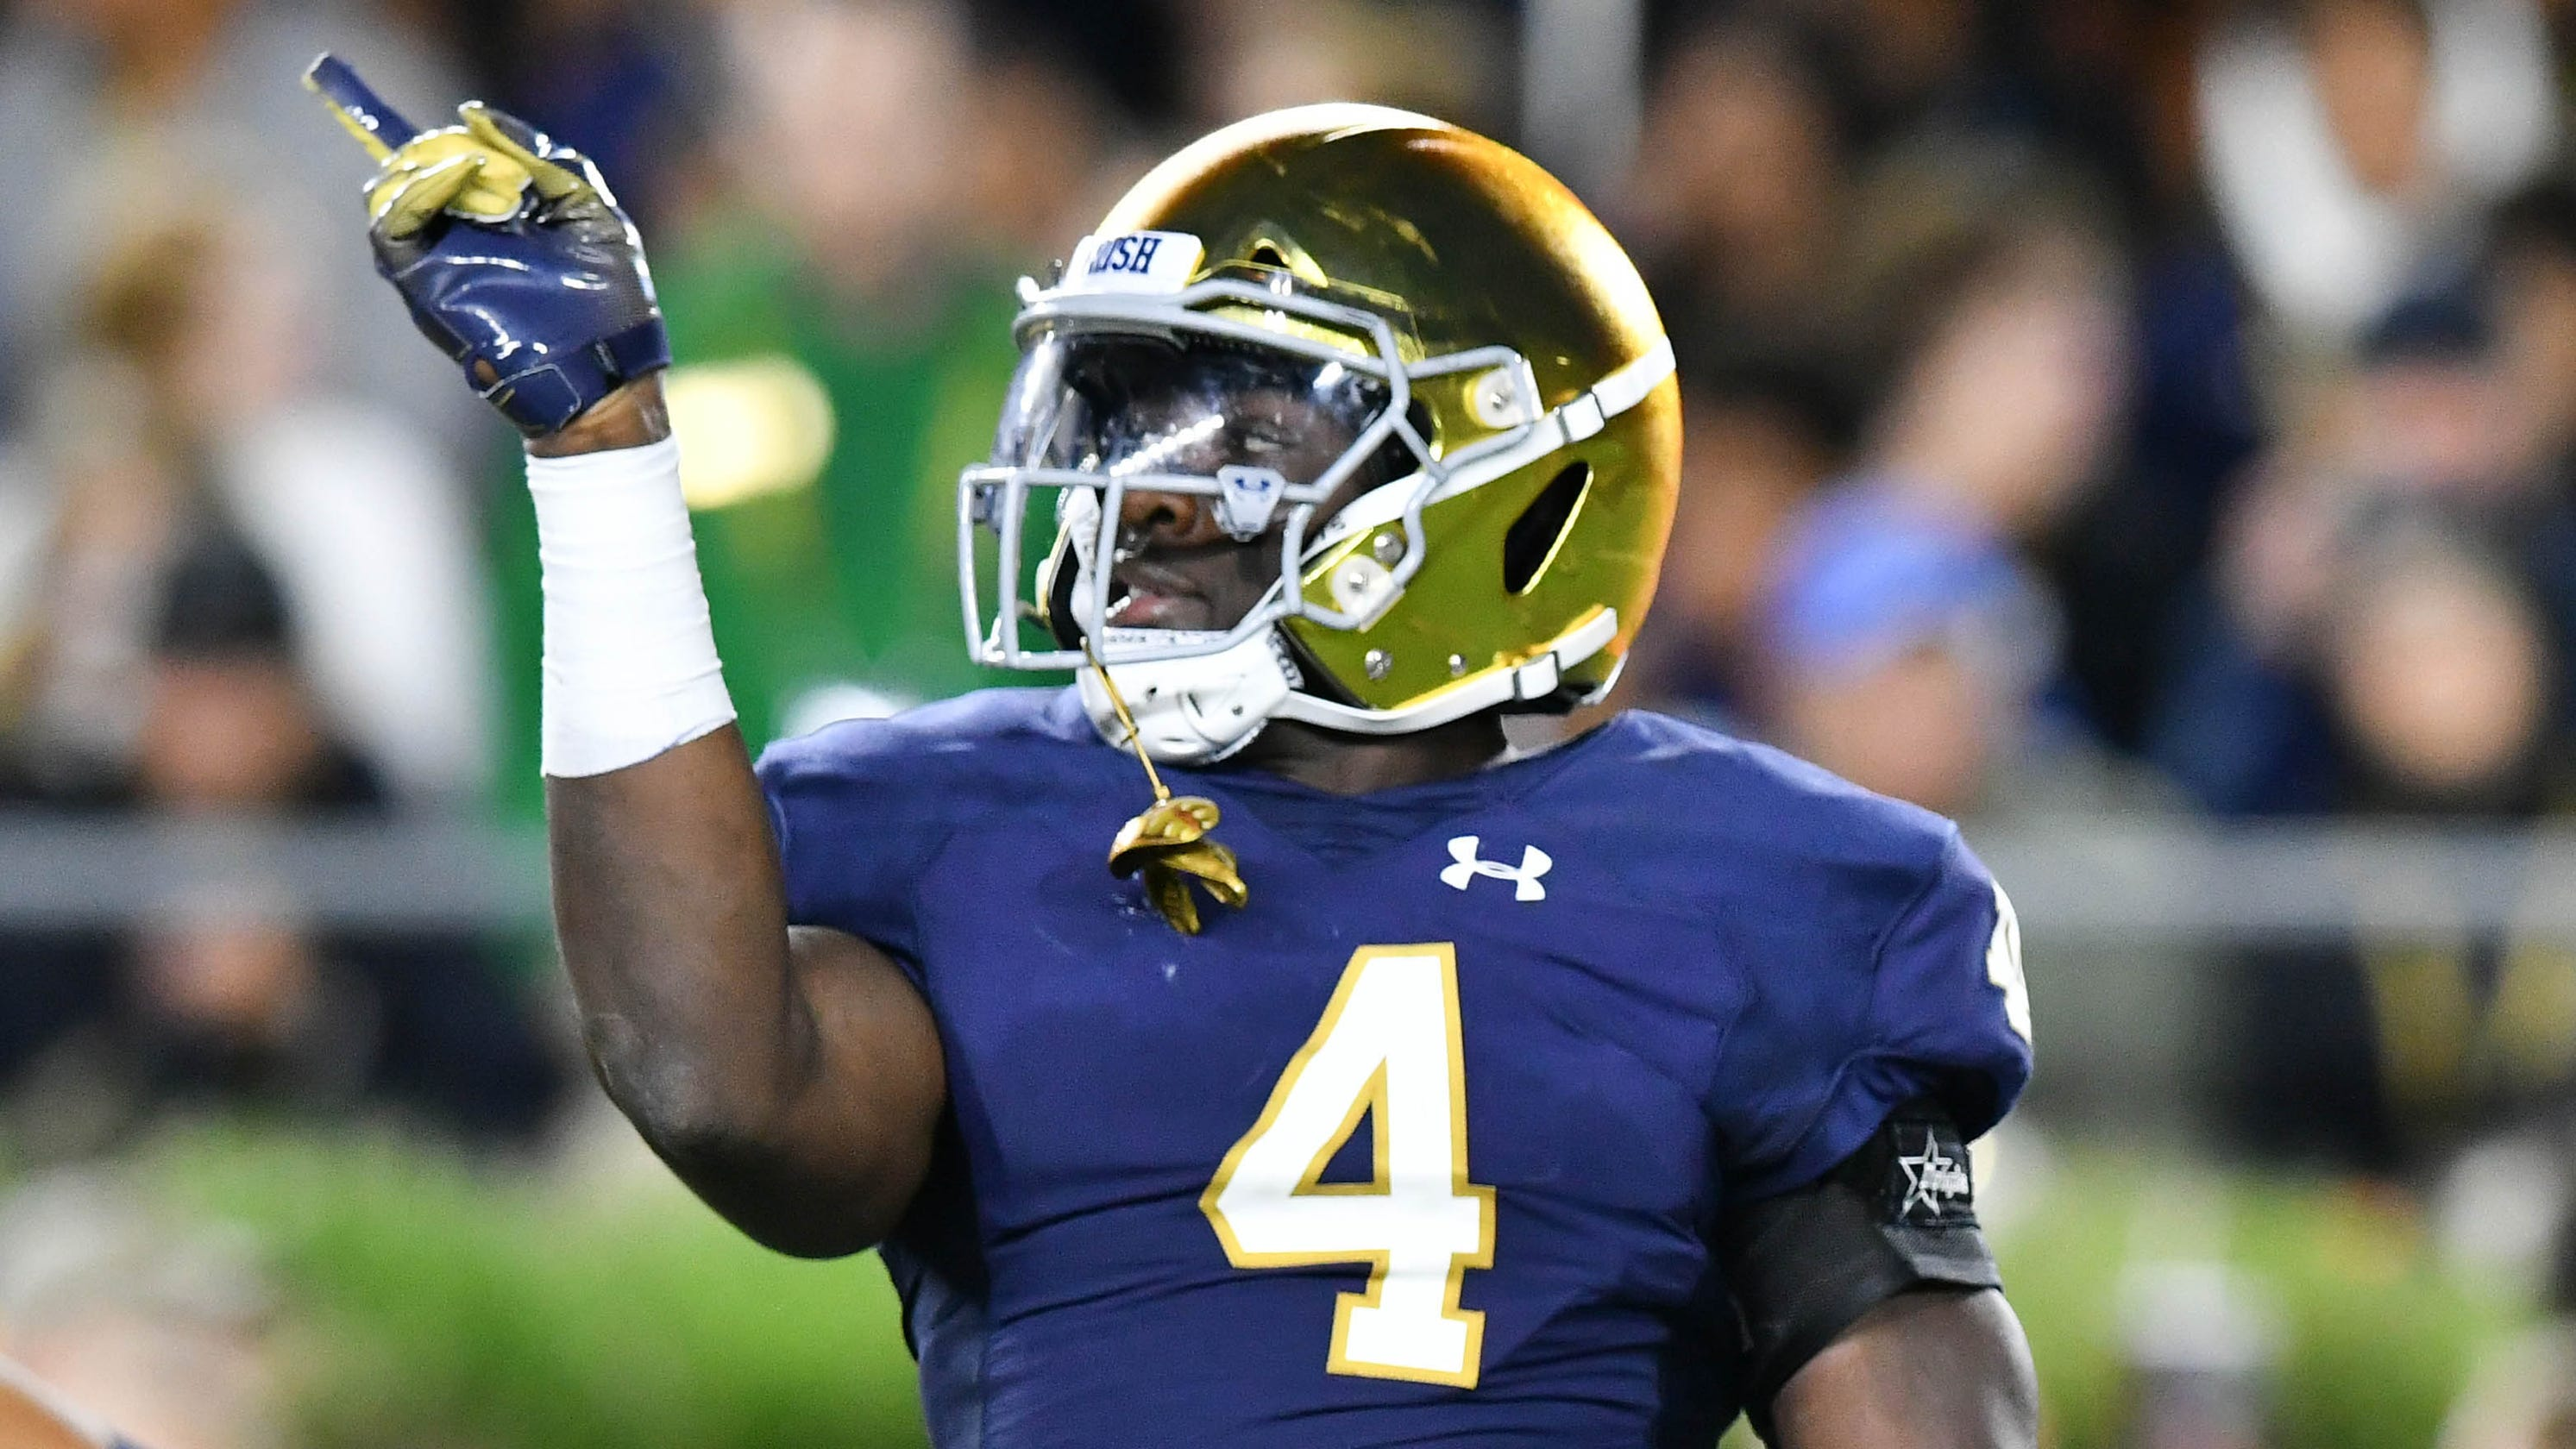 newest d0b66 66c23 Notre Dame football LB tradition continues with Te'von Coney